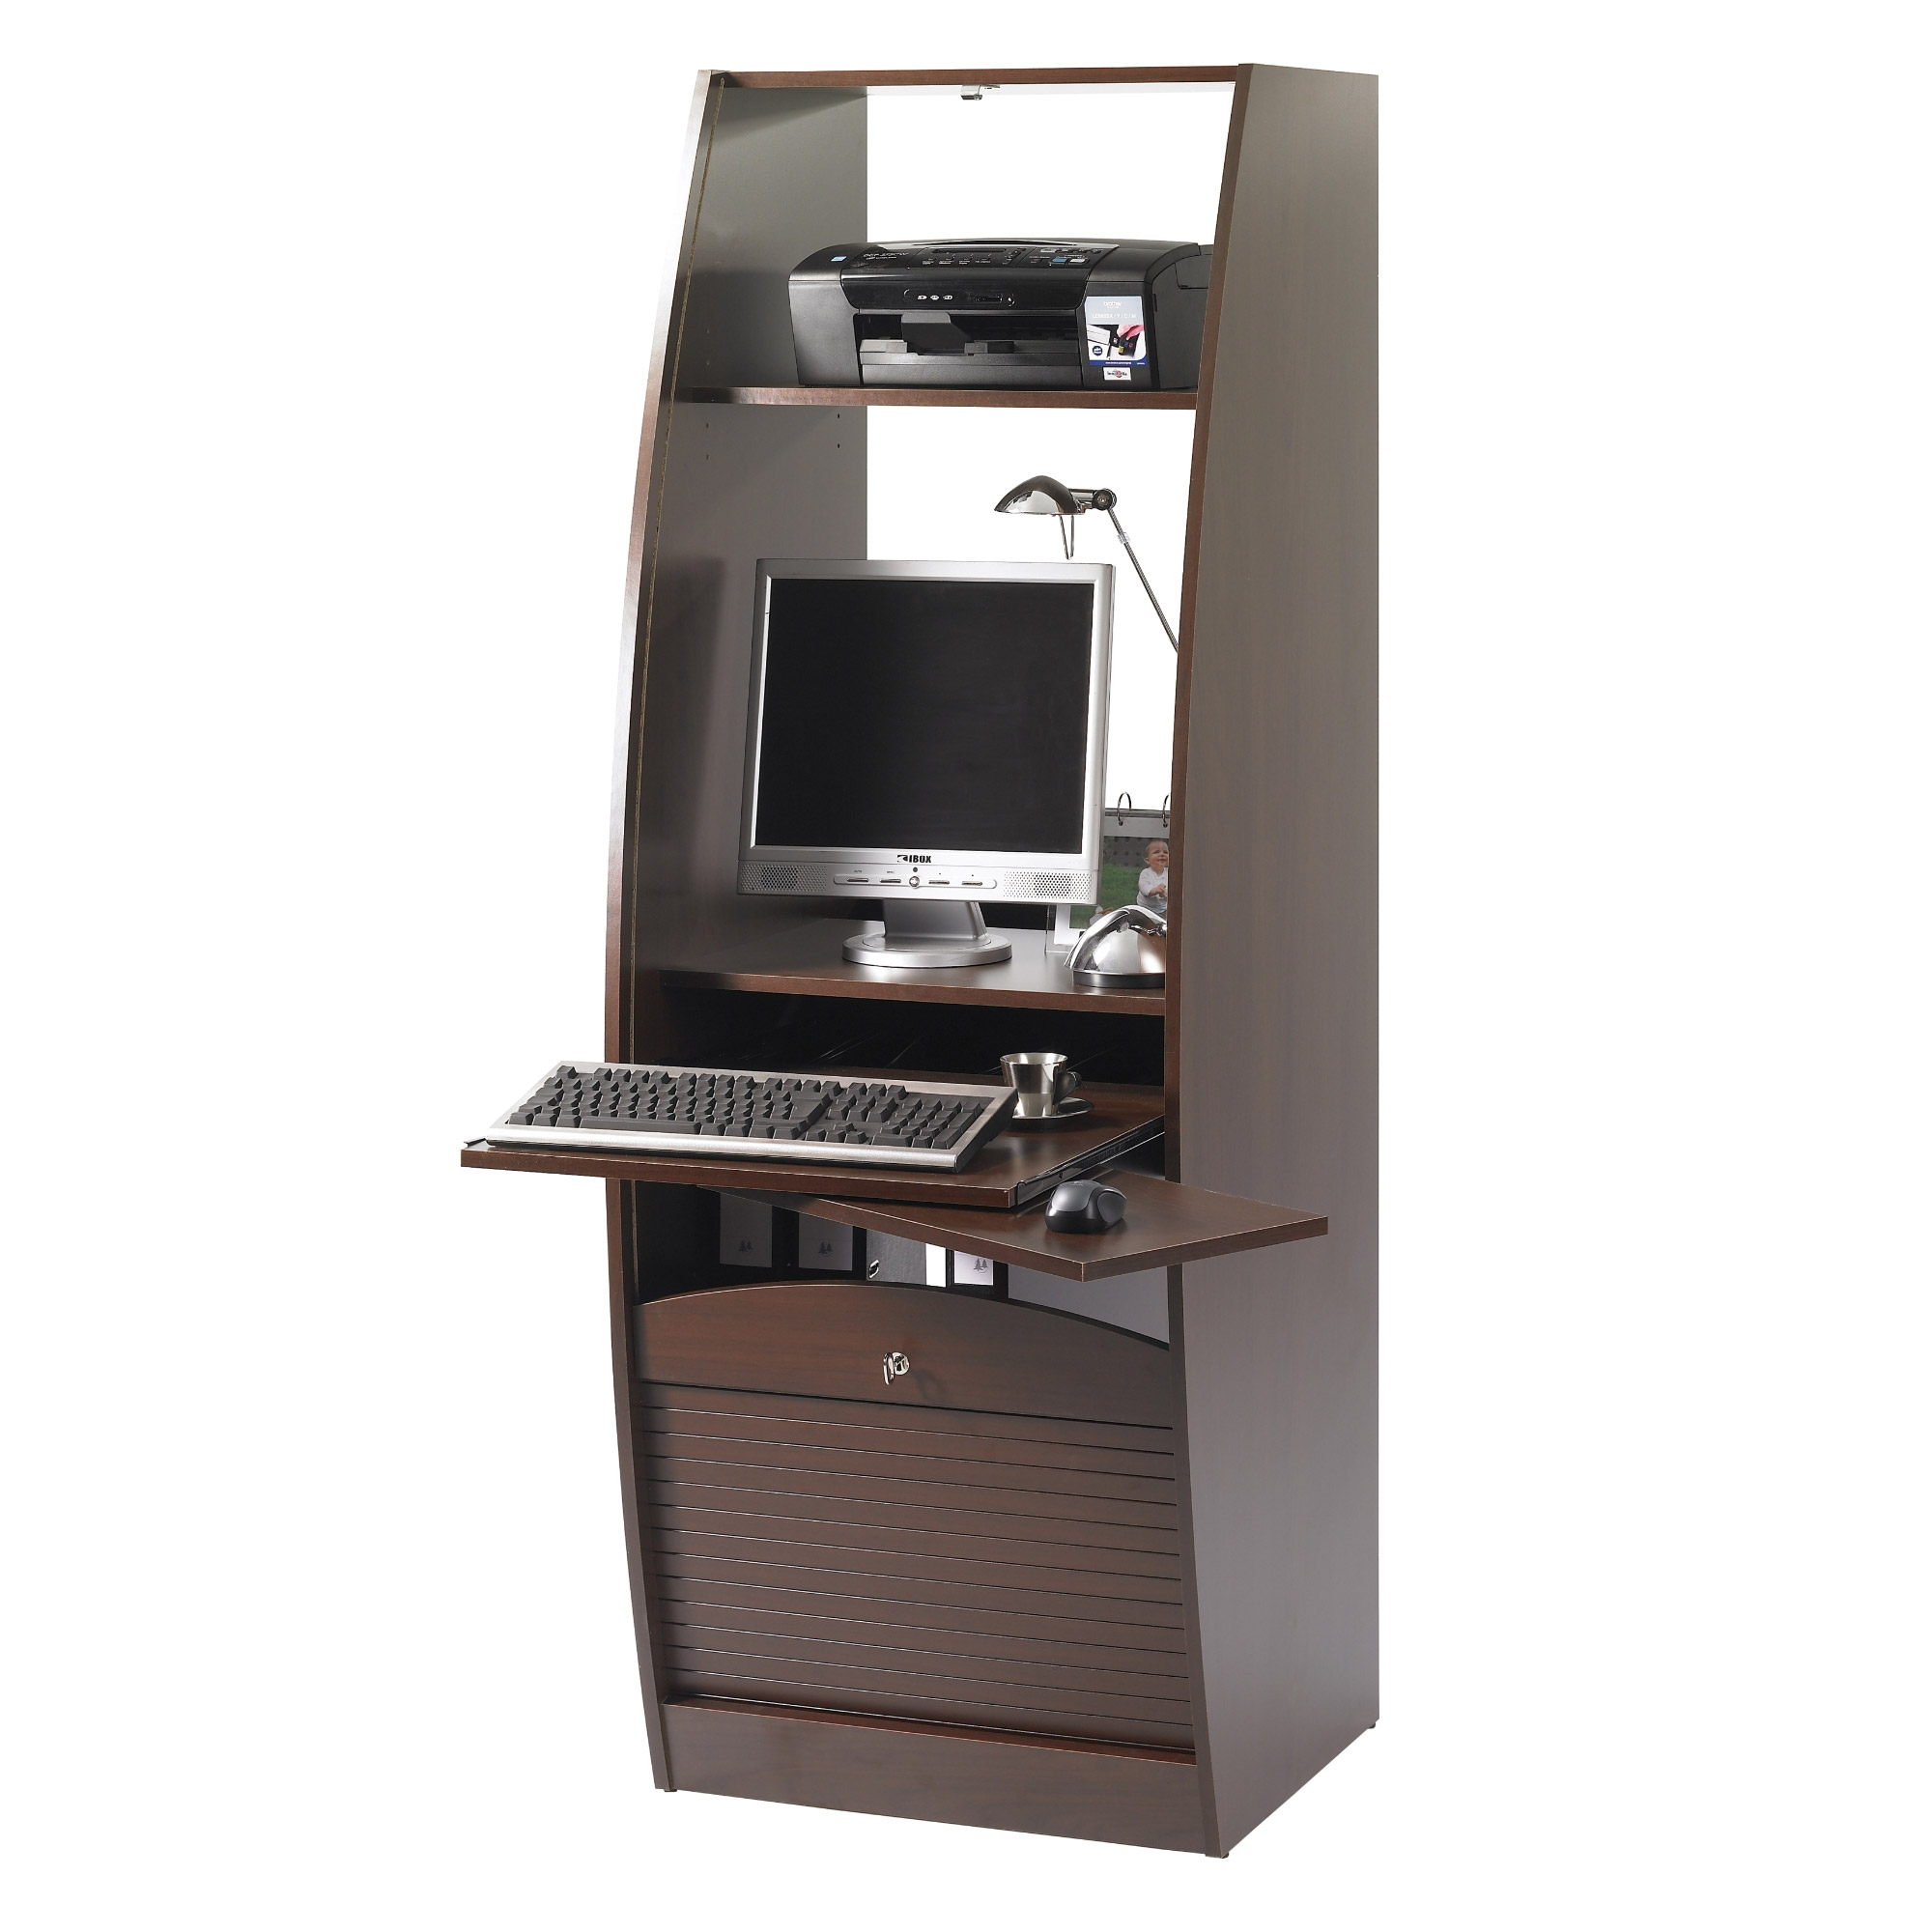 Armoire informatique marron 60 cm paris 572 for Bureau armoire informatique